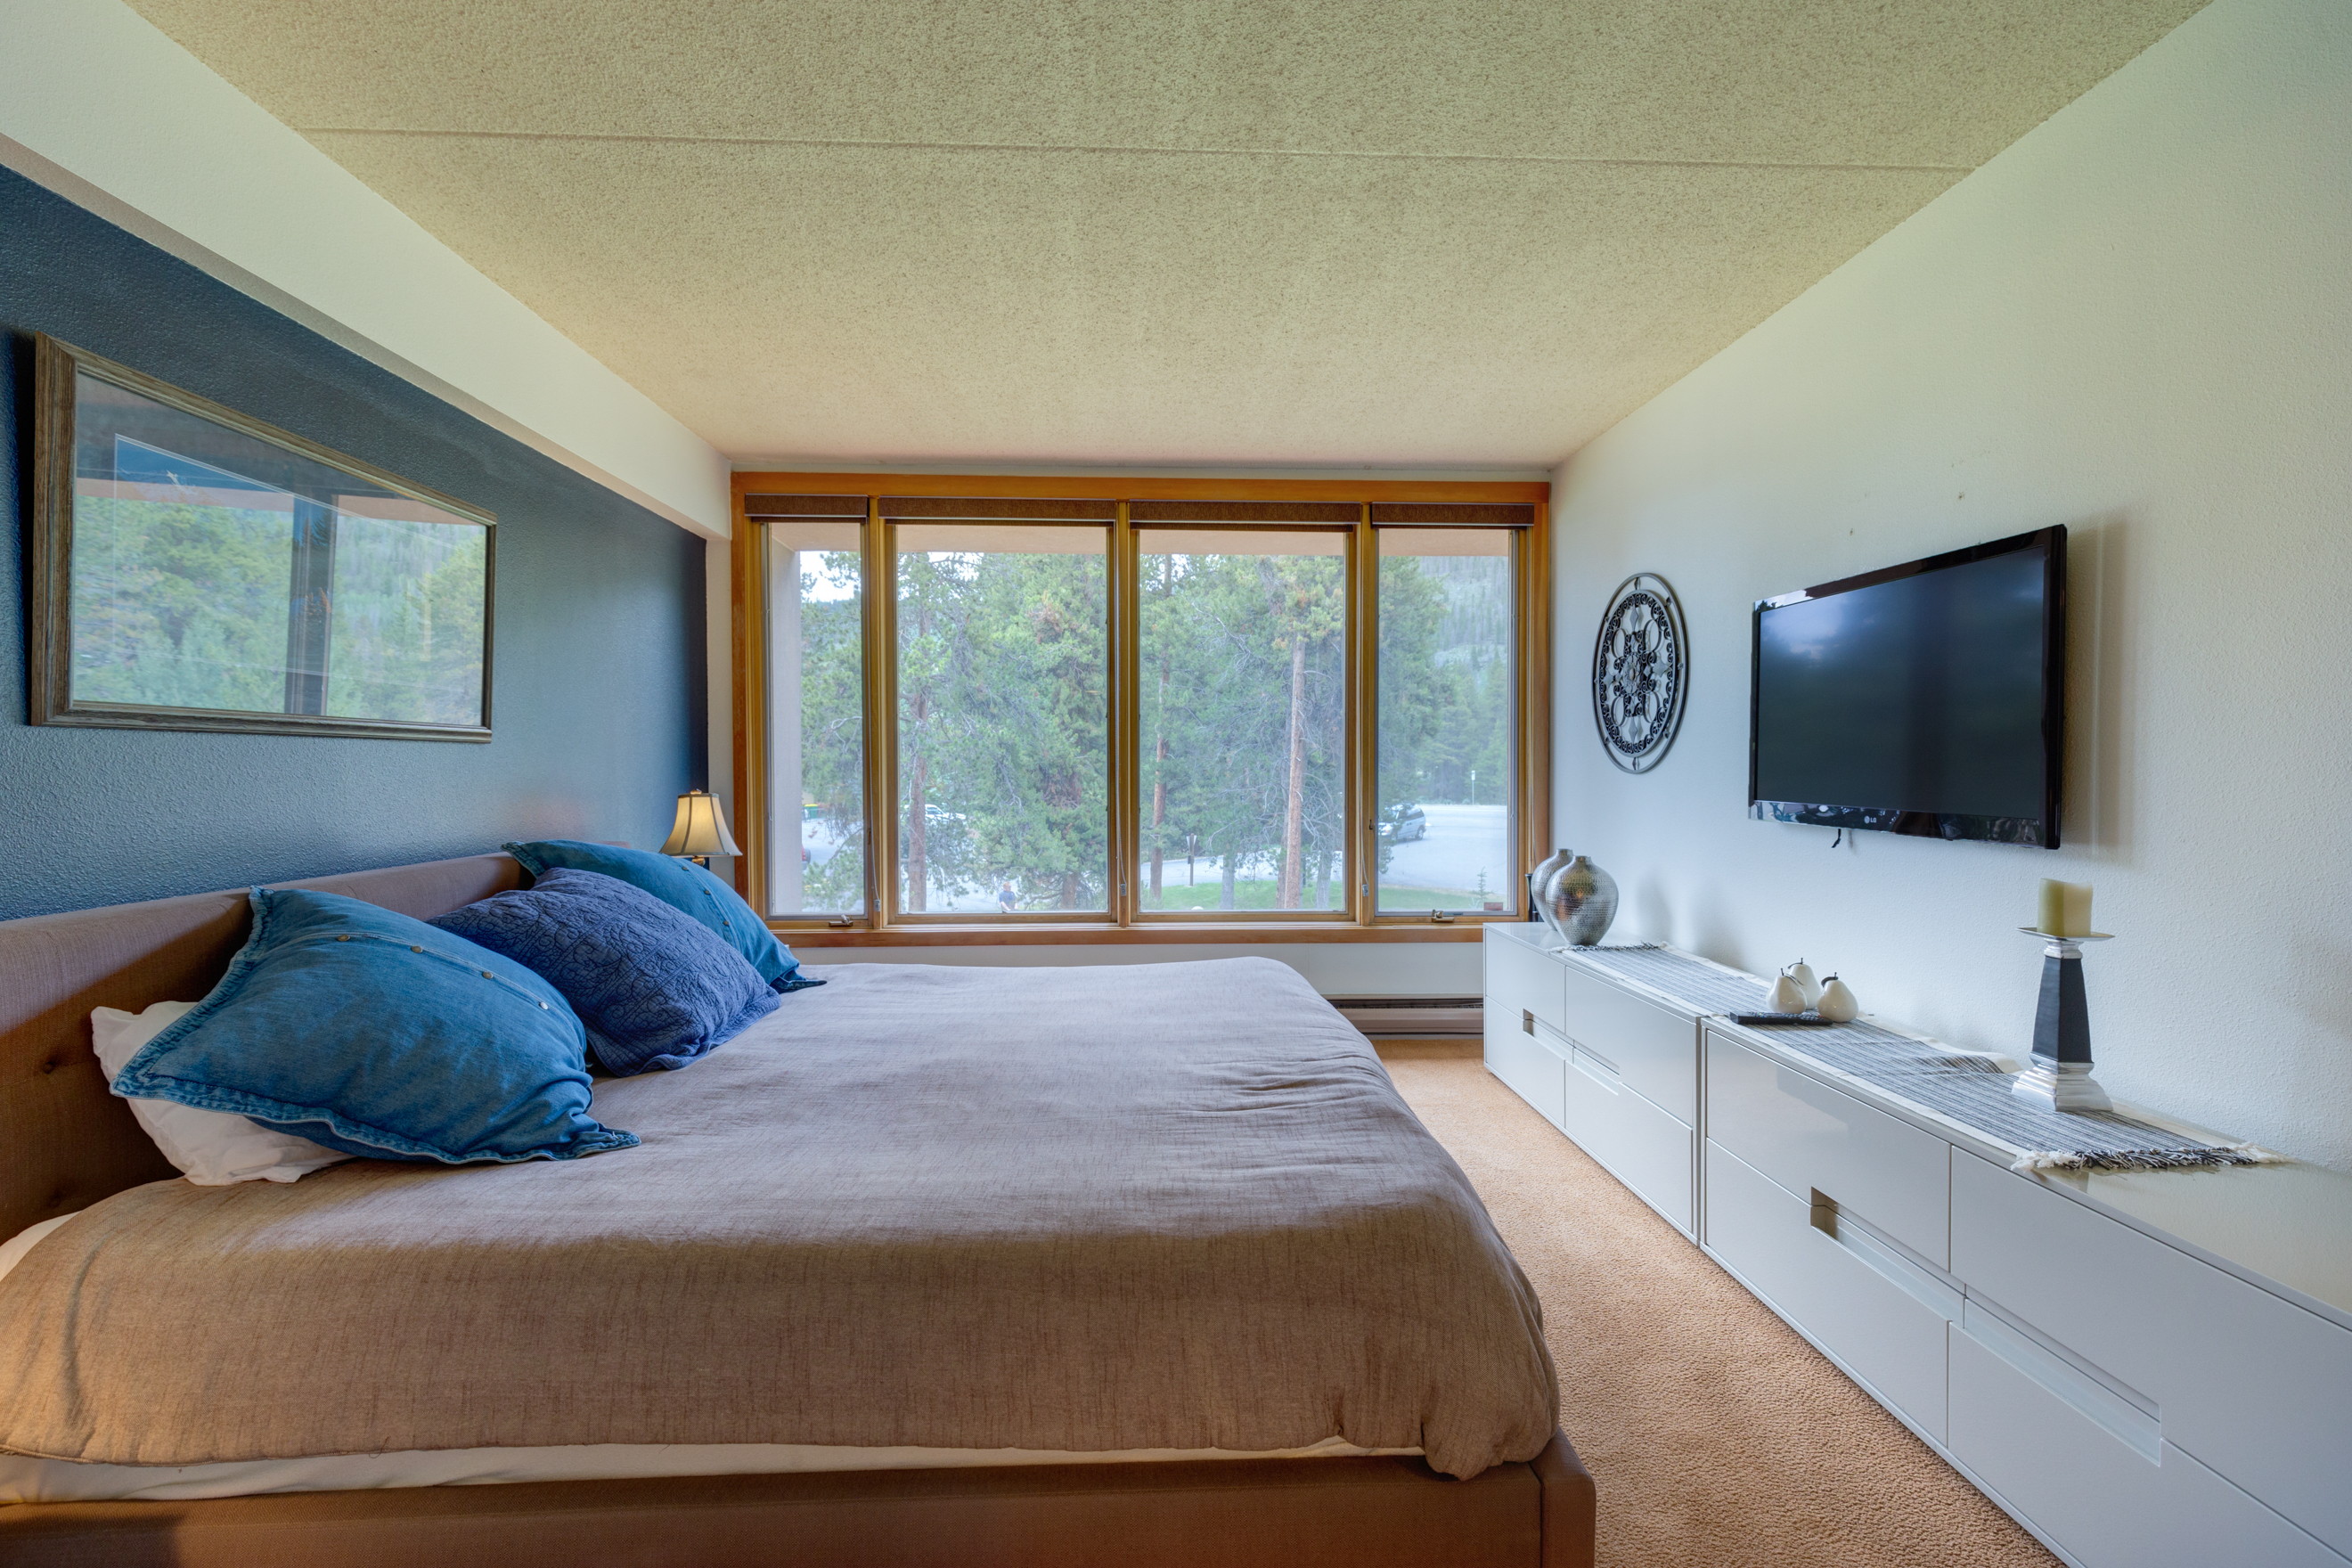 The master bedroom features a king-sized bed, large windows and a mounted flat screen TV.